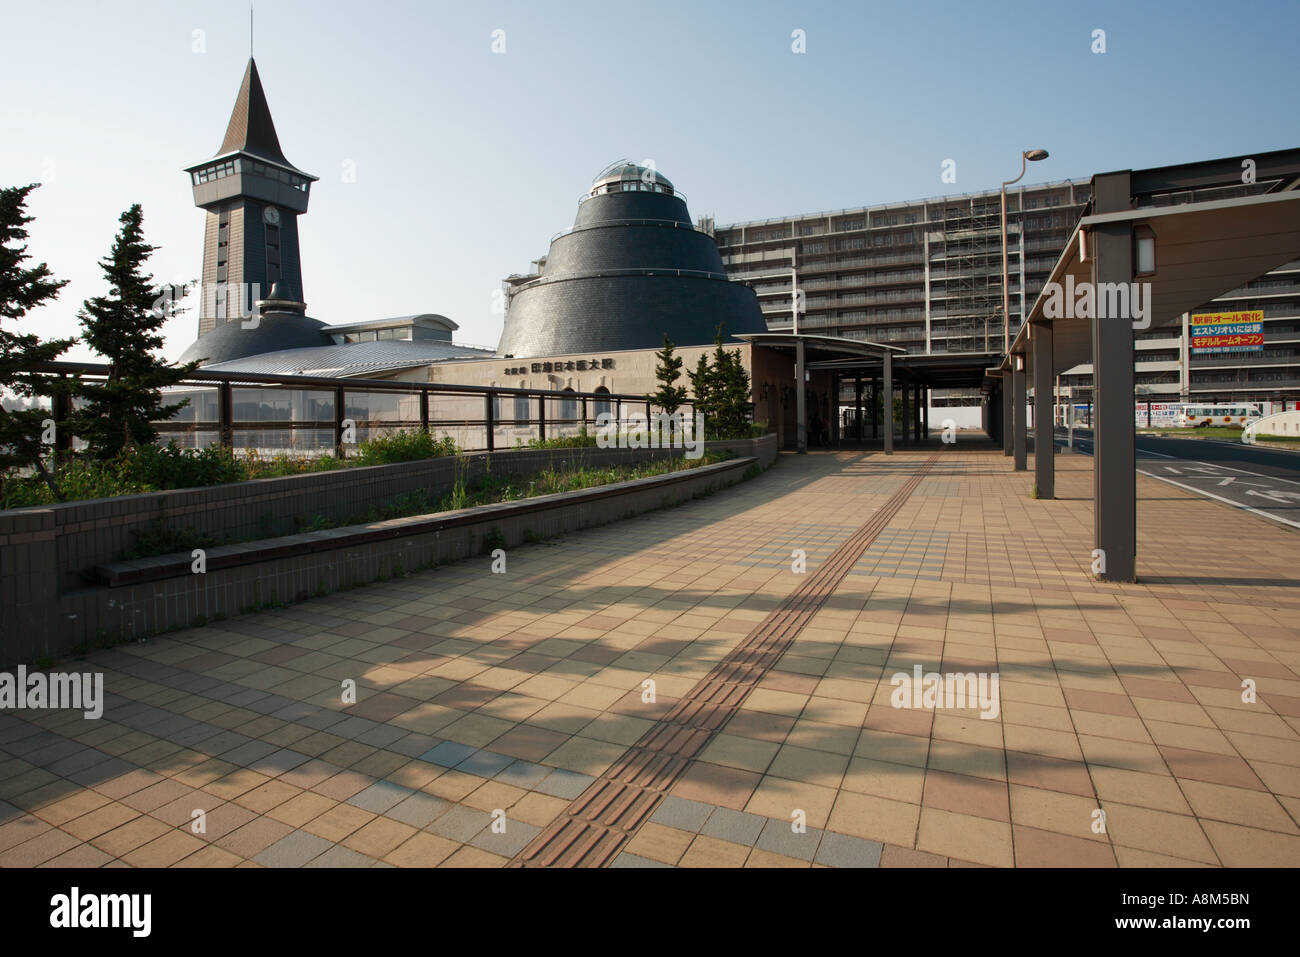 CHIBA, JAPAN - MAY 4: Imba Nihon-idai Station on May 4, 2007 in Chiba, Japan. - Stock Image